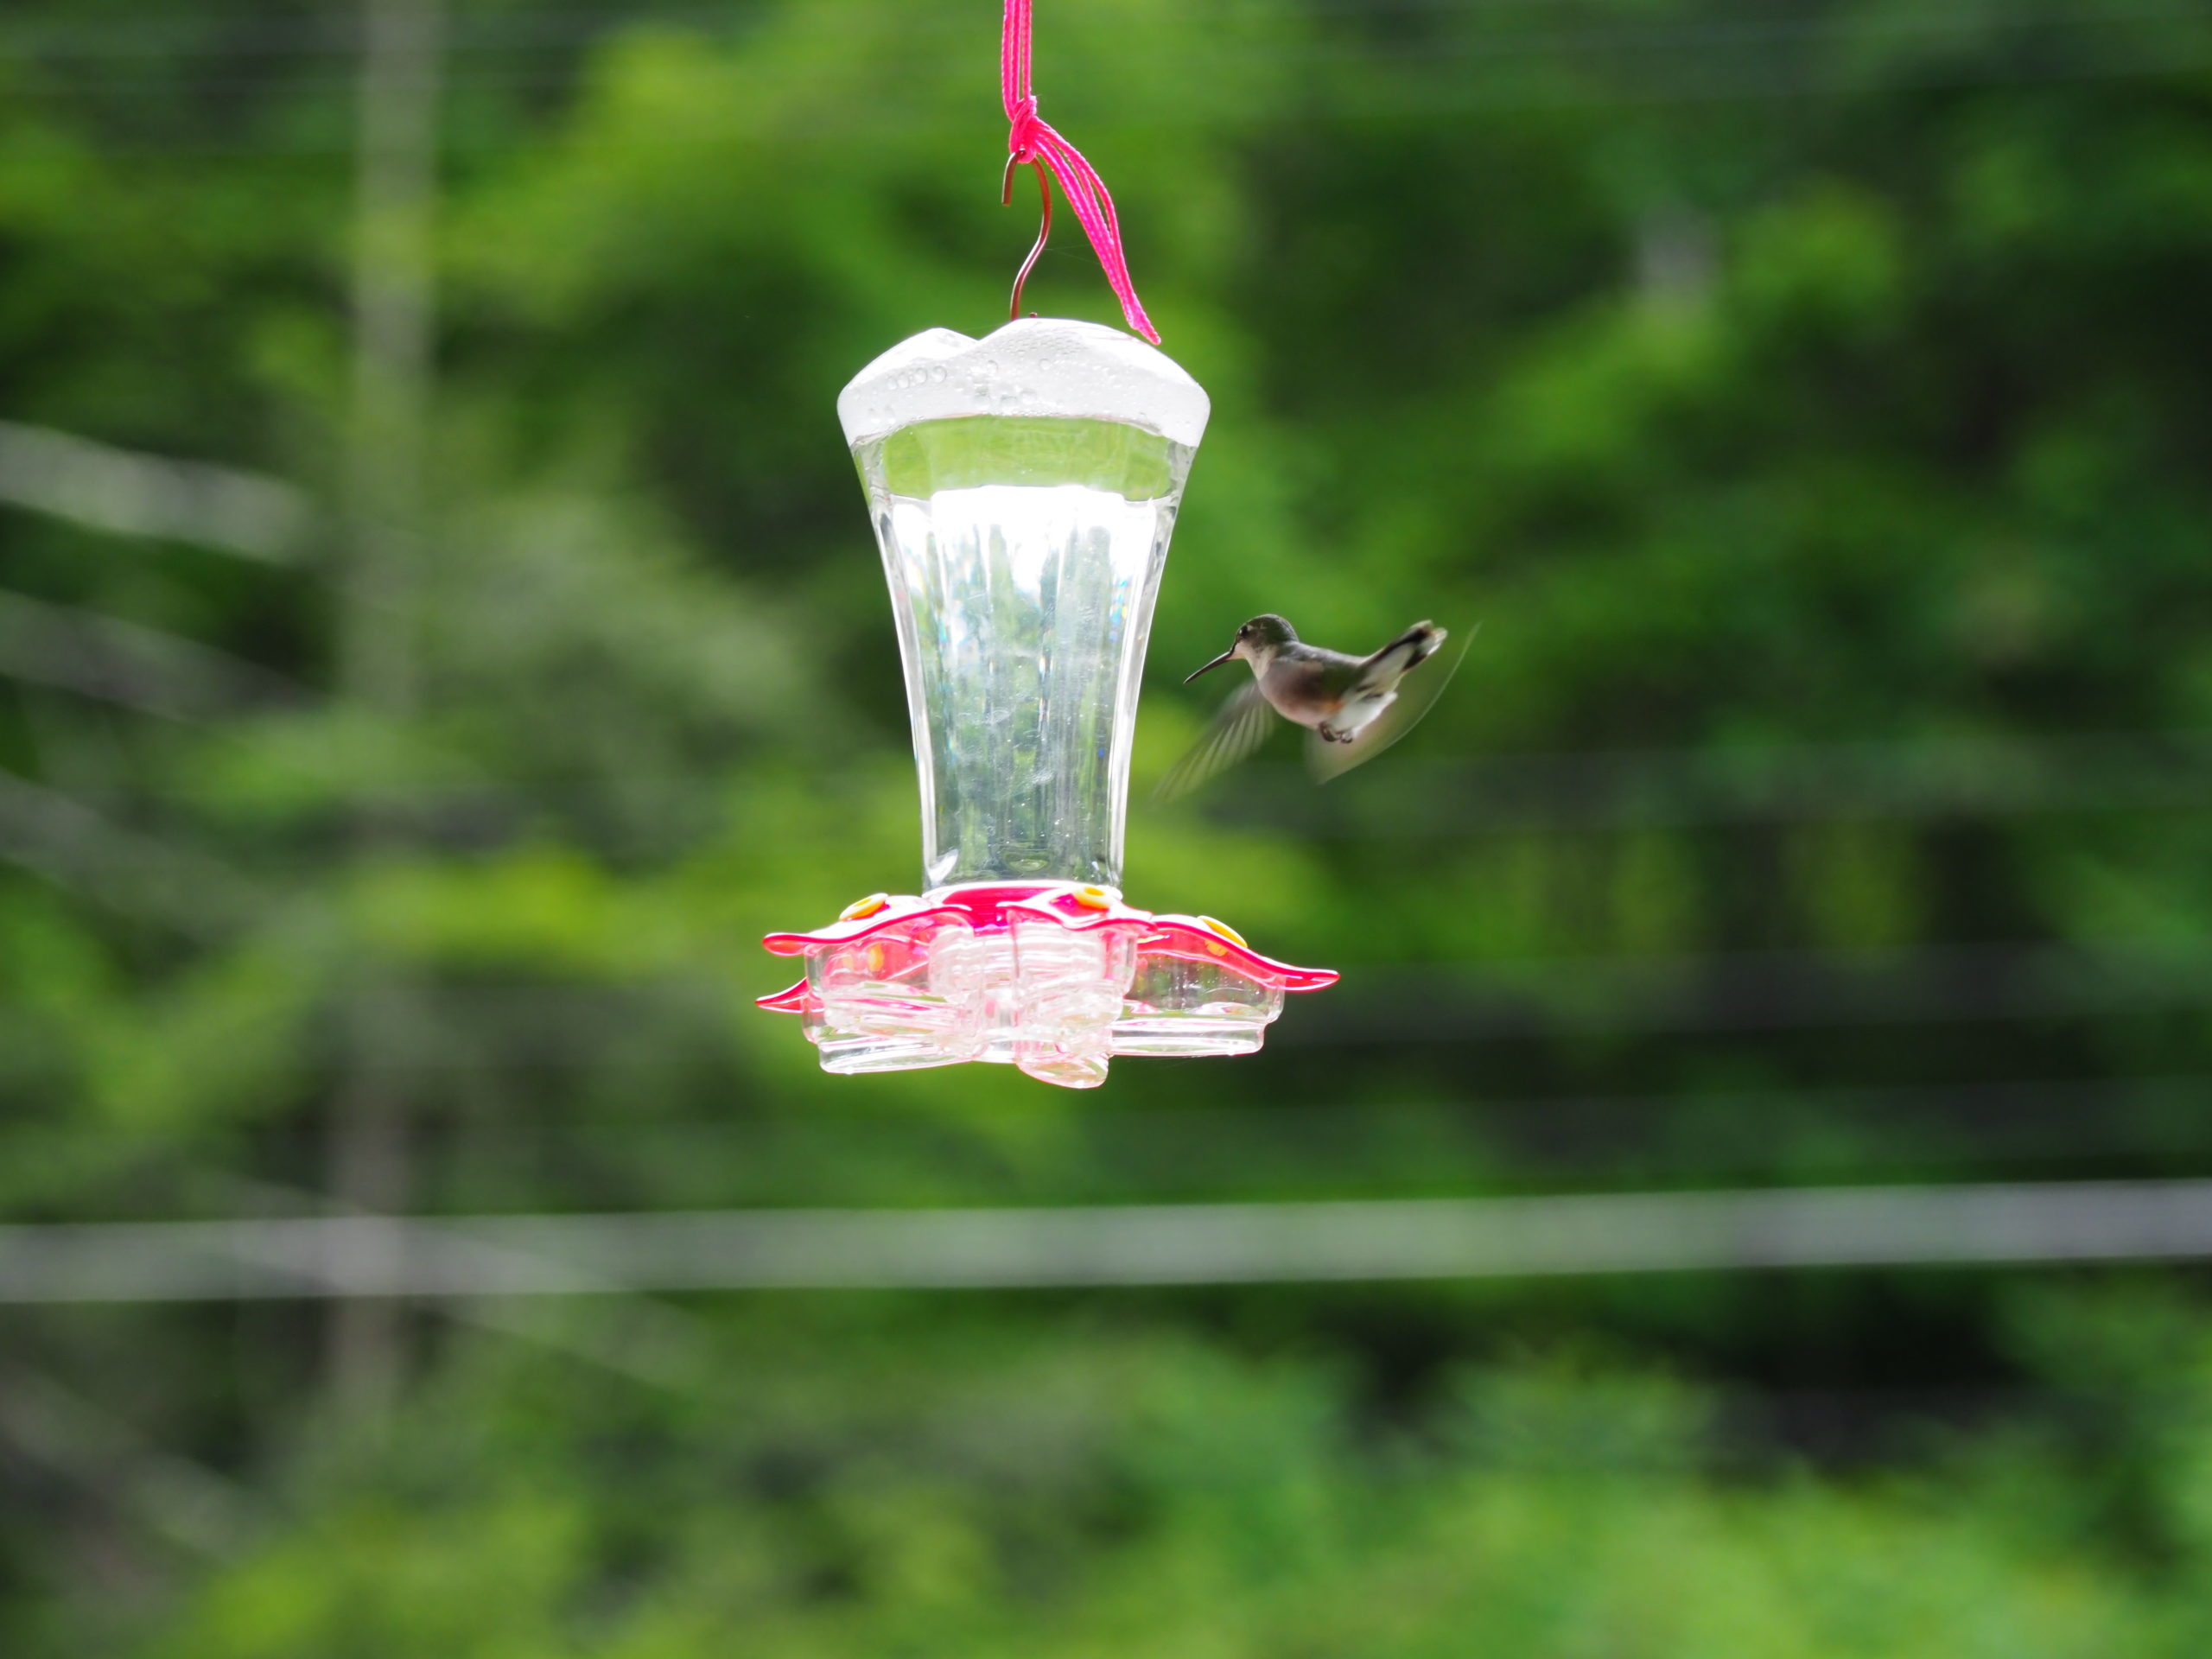 A ruby-throated hummingbird approaches a